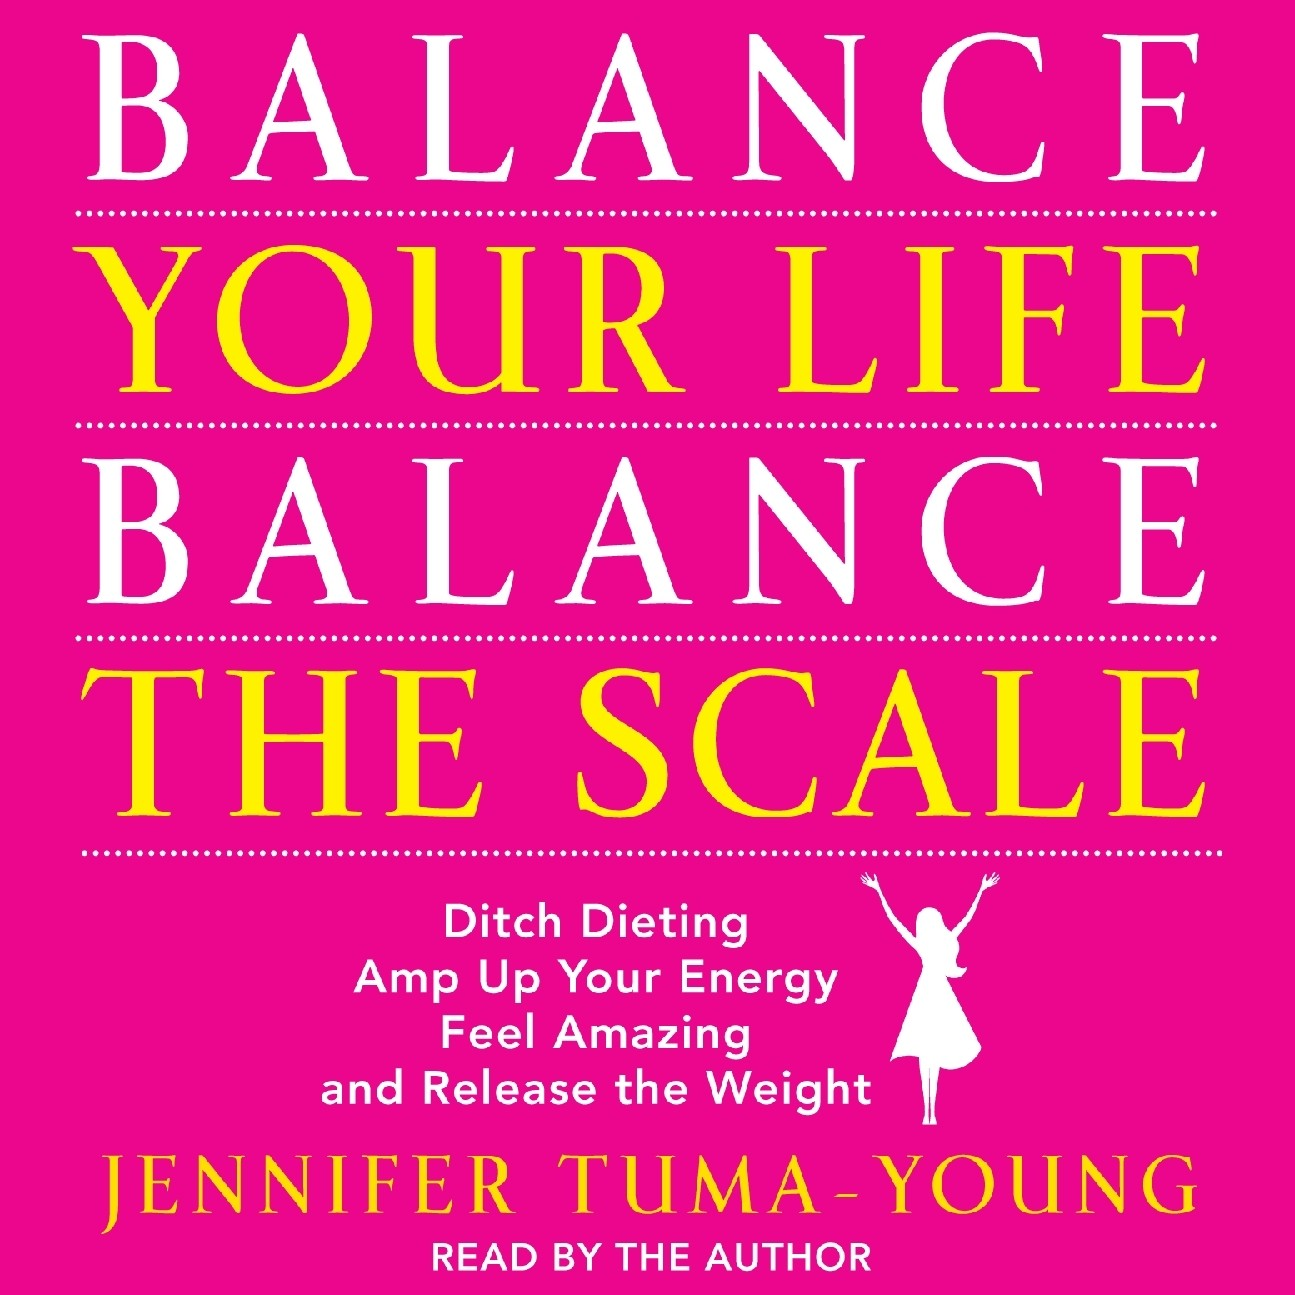 Balance Your Life Balance The Scale